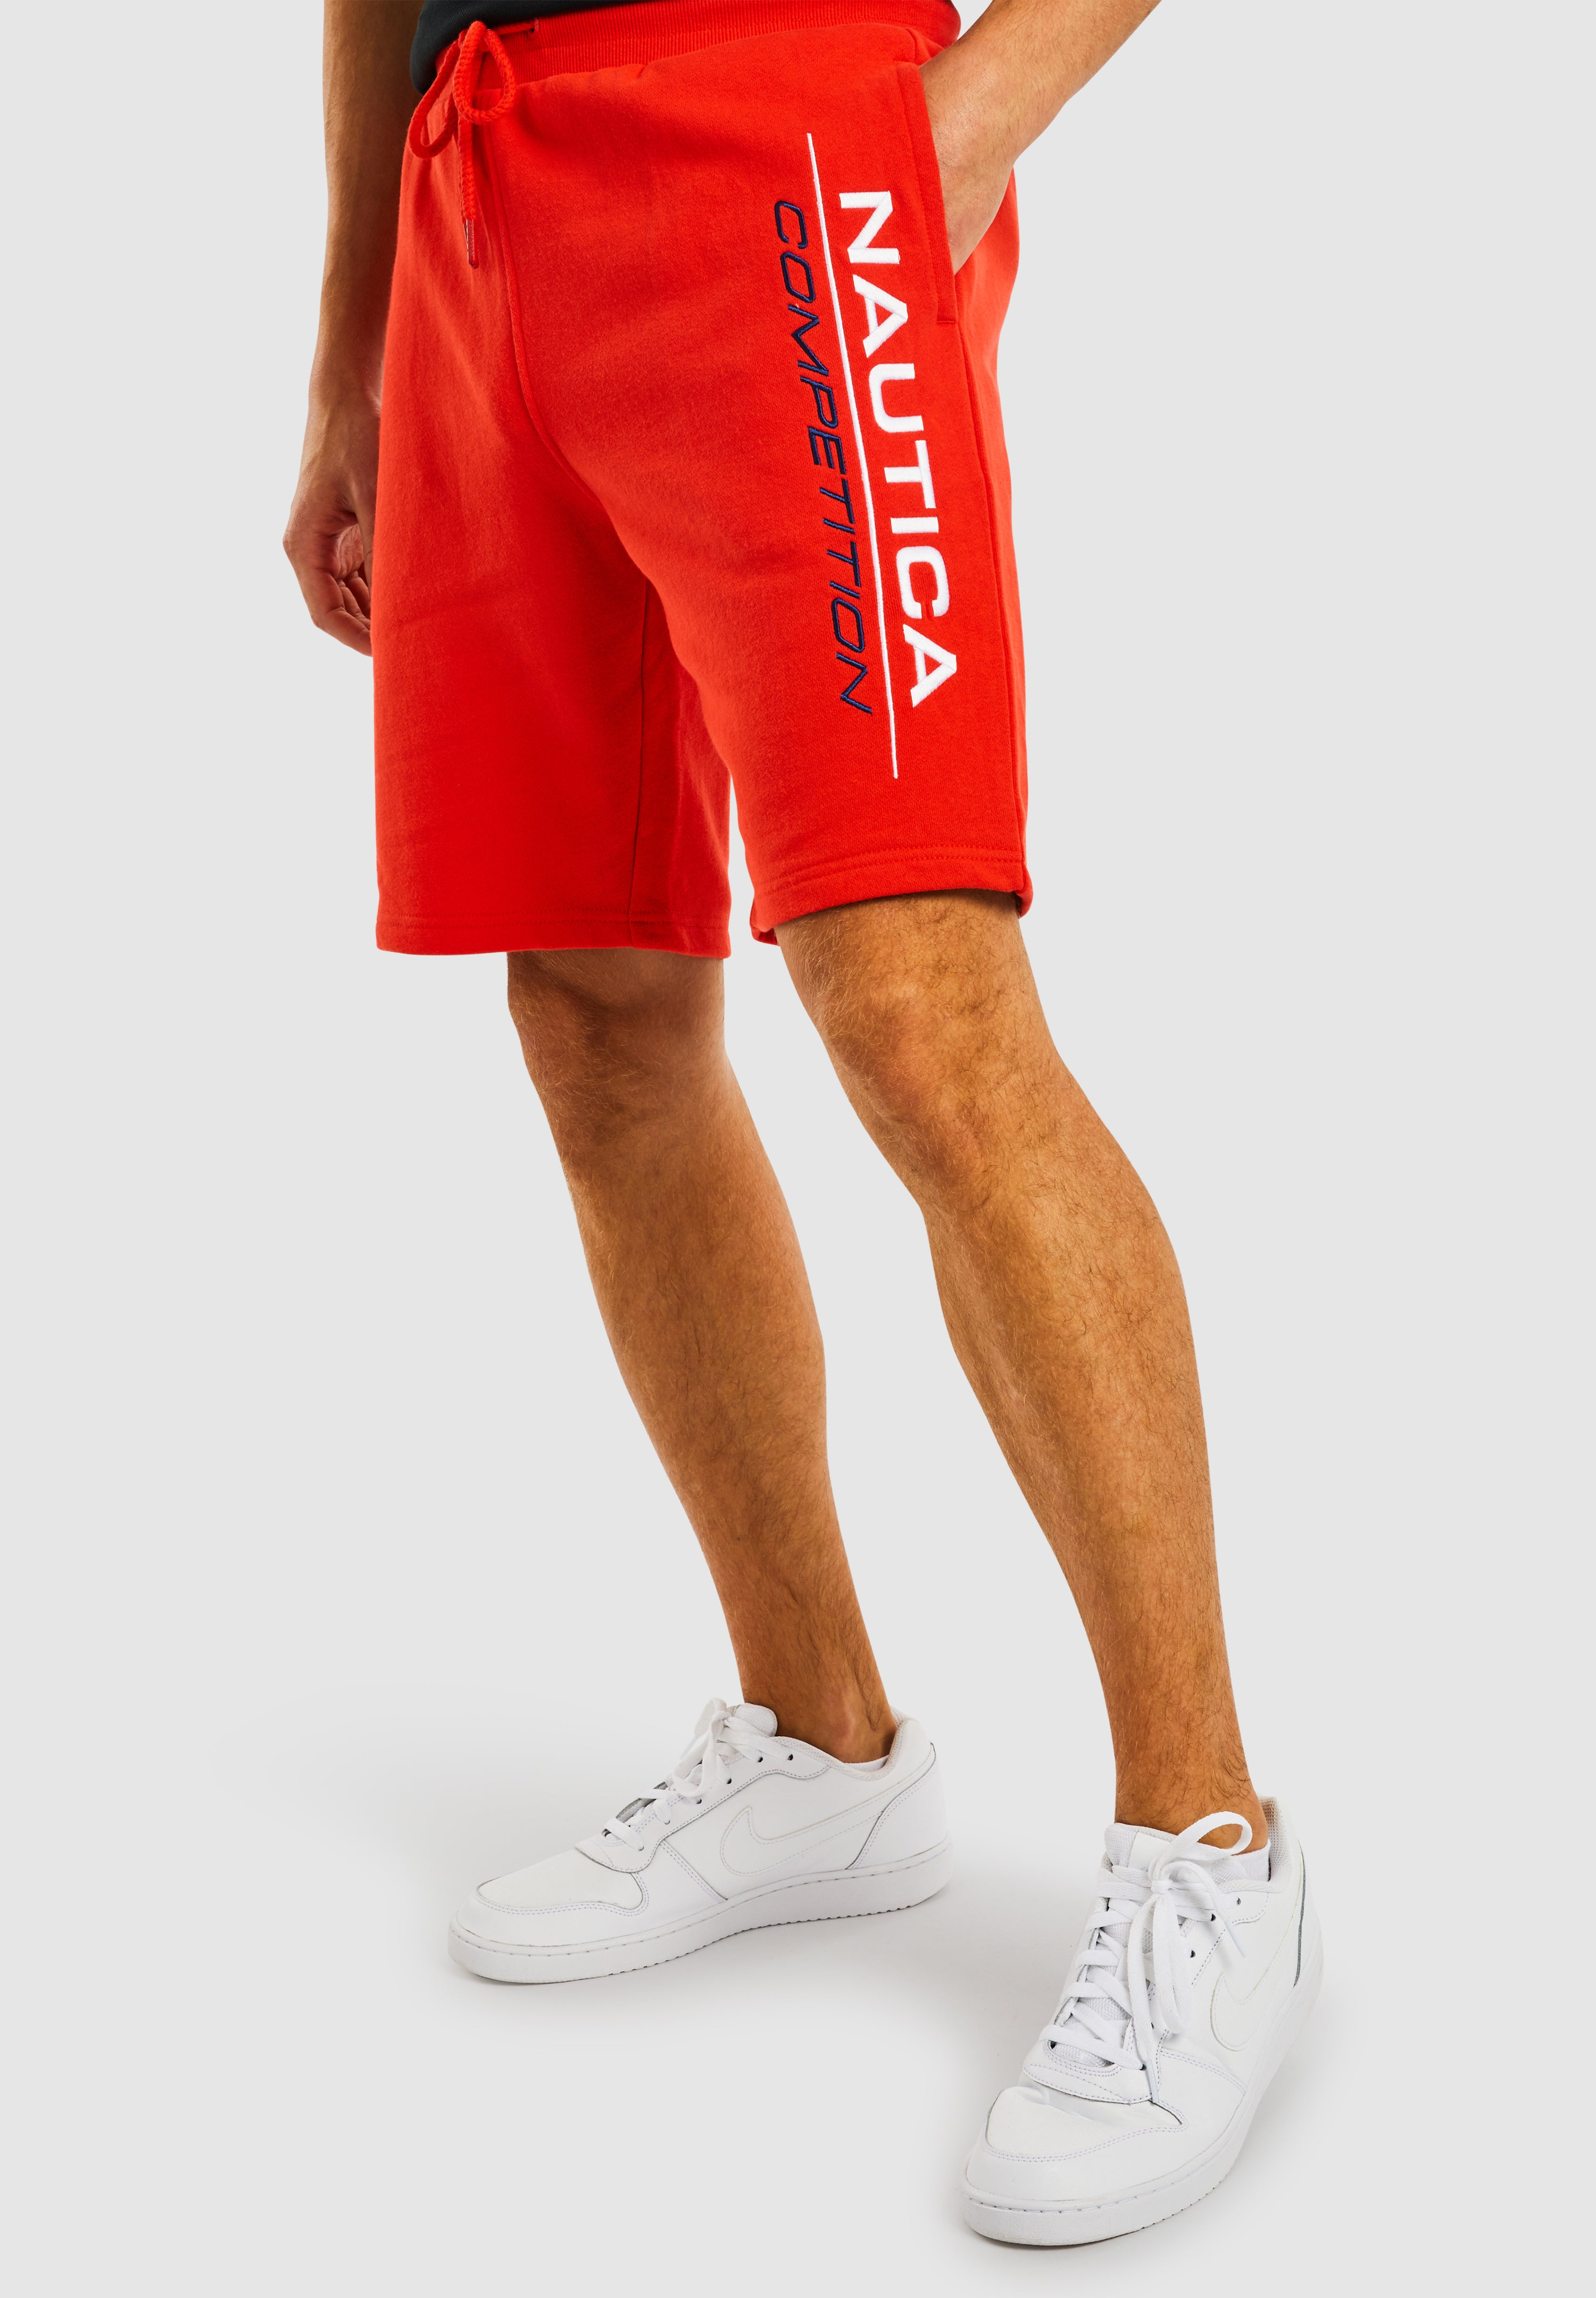 Dodger Fleece Short - Red